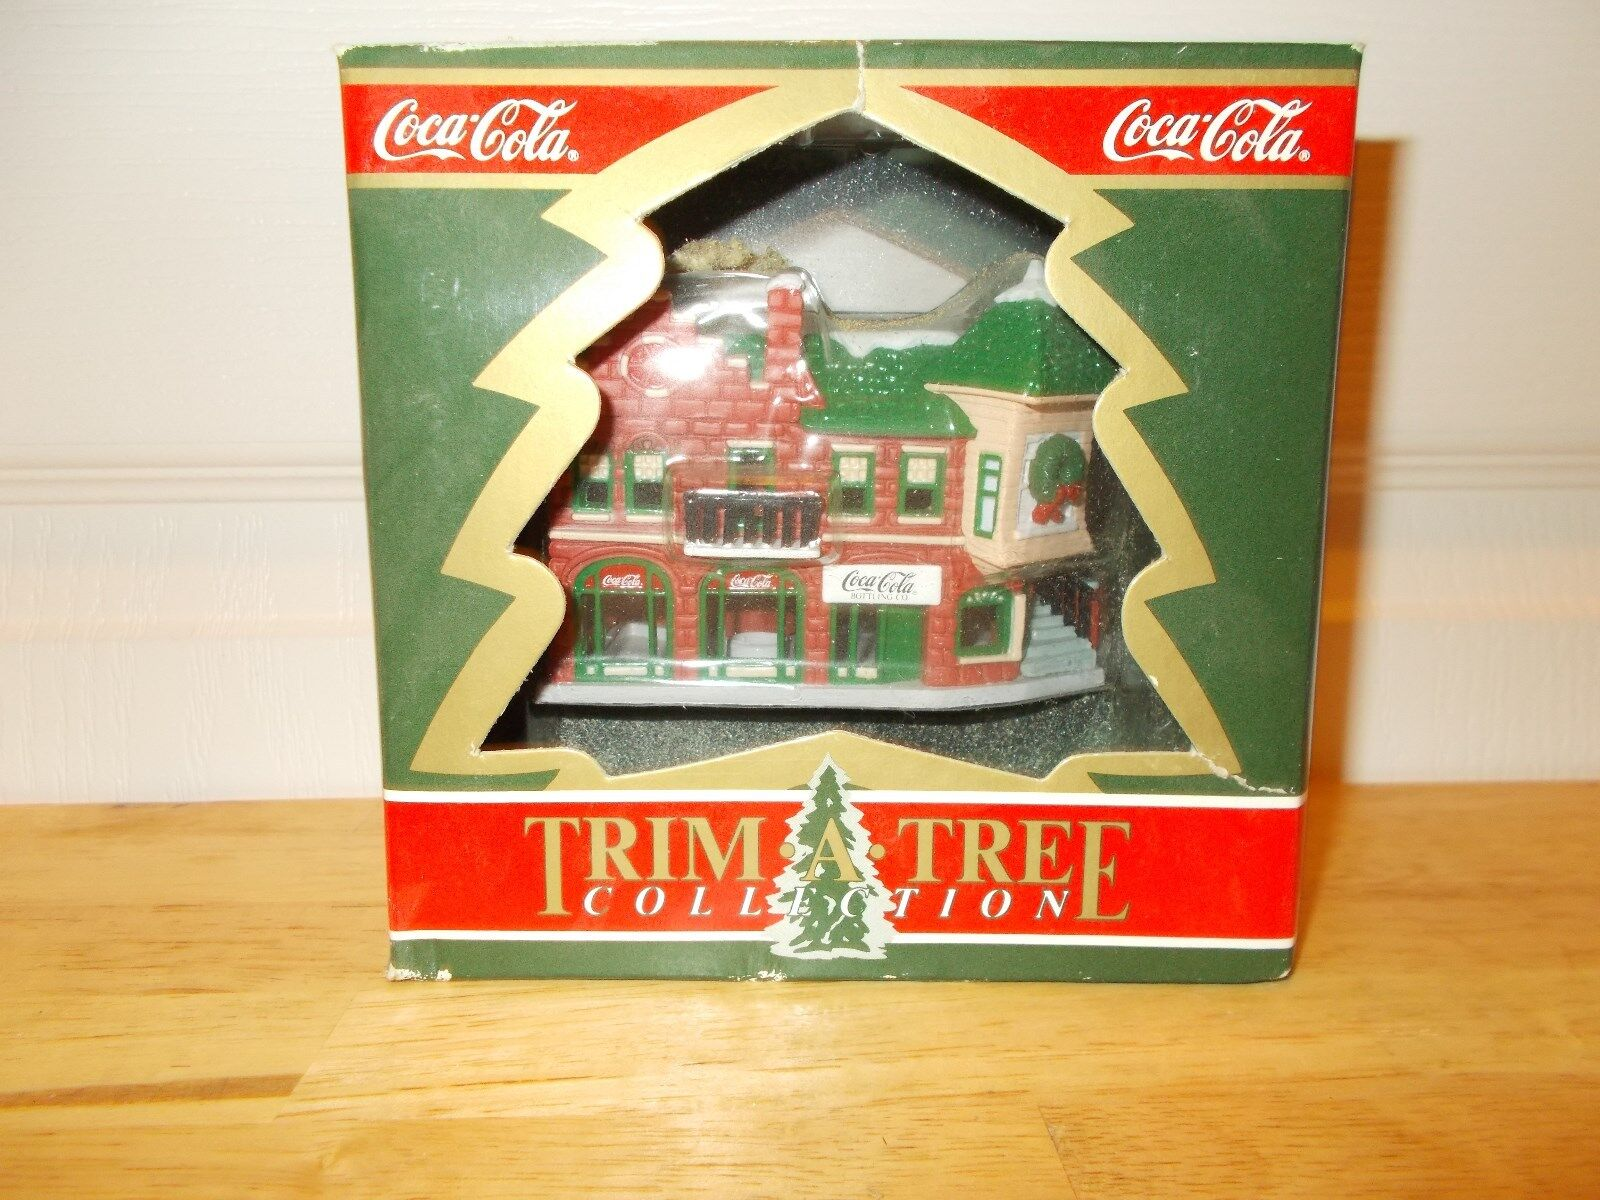 COCA COLA Trim A Tree Collection EARLY BOTTLING COMPANY Ornament - Box 1991